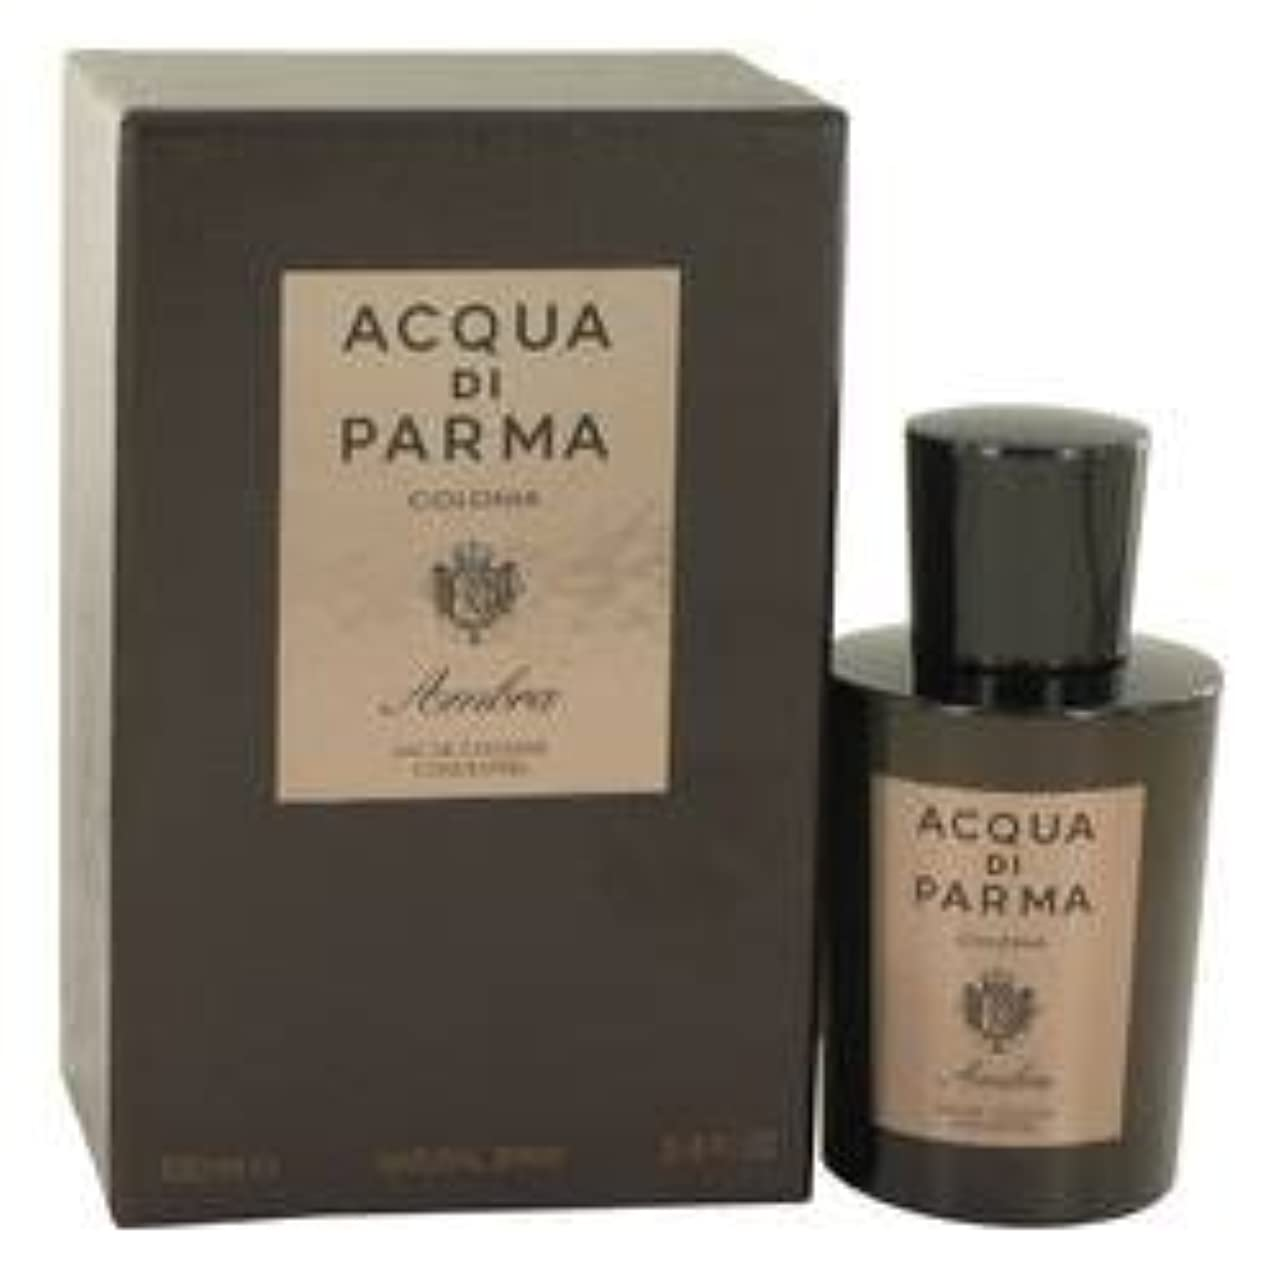 ビリーヤギうがい薬硬さAcqua Di Parma Colonia Ambra Eau De Cologne Concentrate Spray By Acqua Di Parma